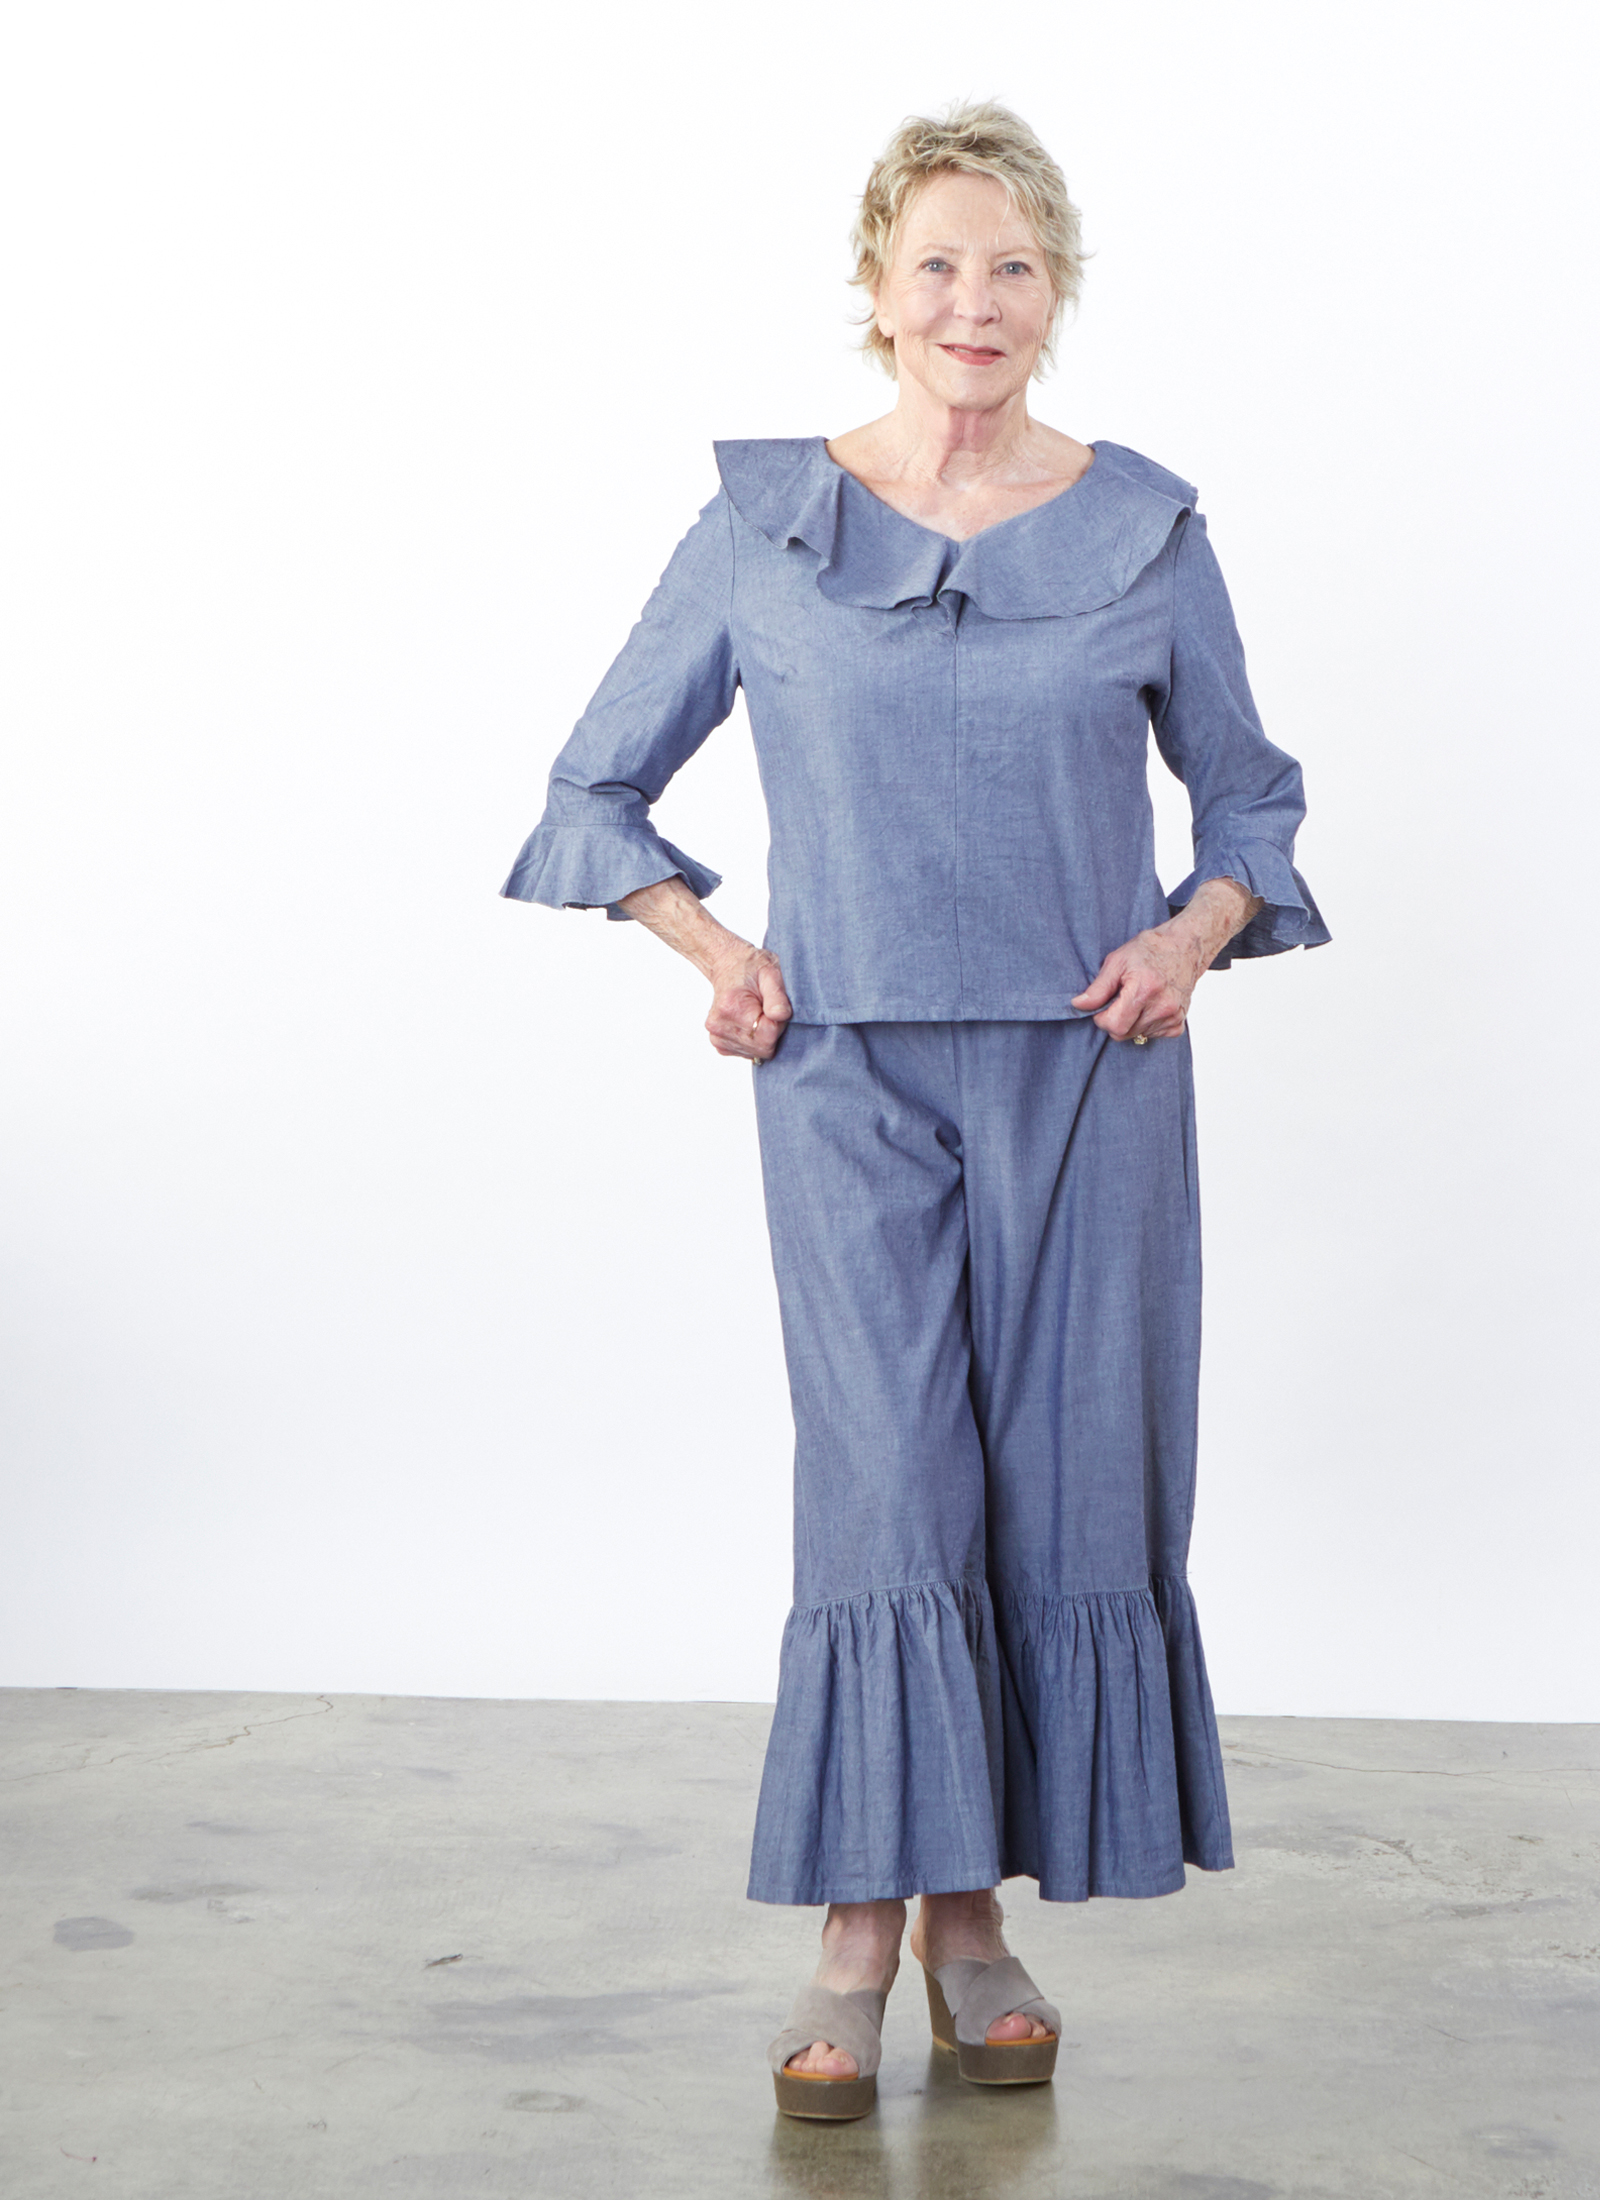 Georgia Shirt, Ruffle Pant in Oia Cotton Chambray